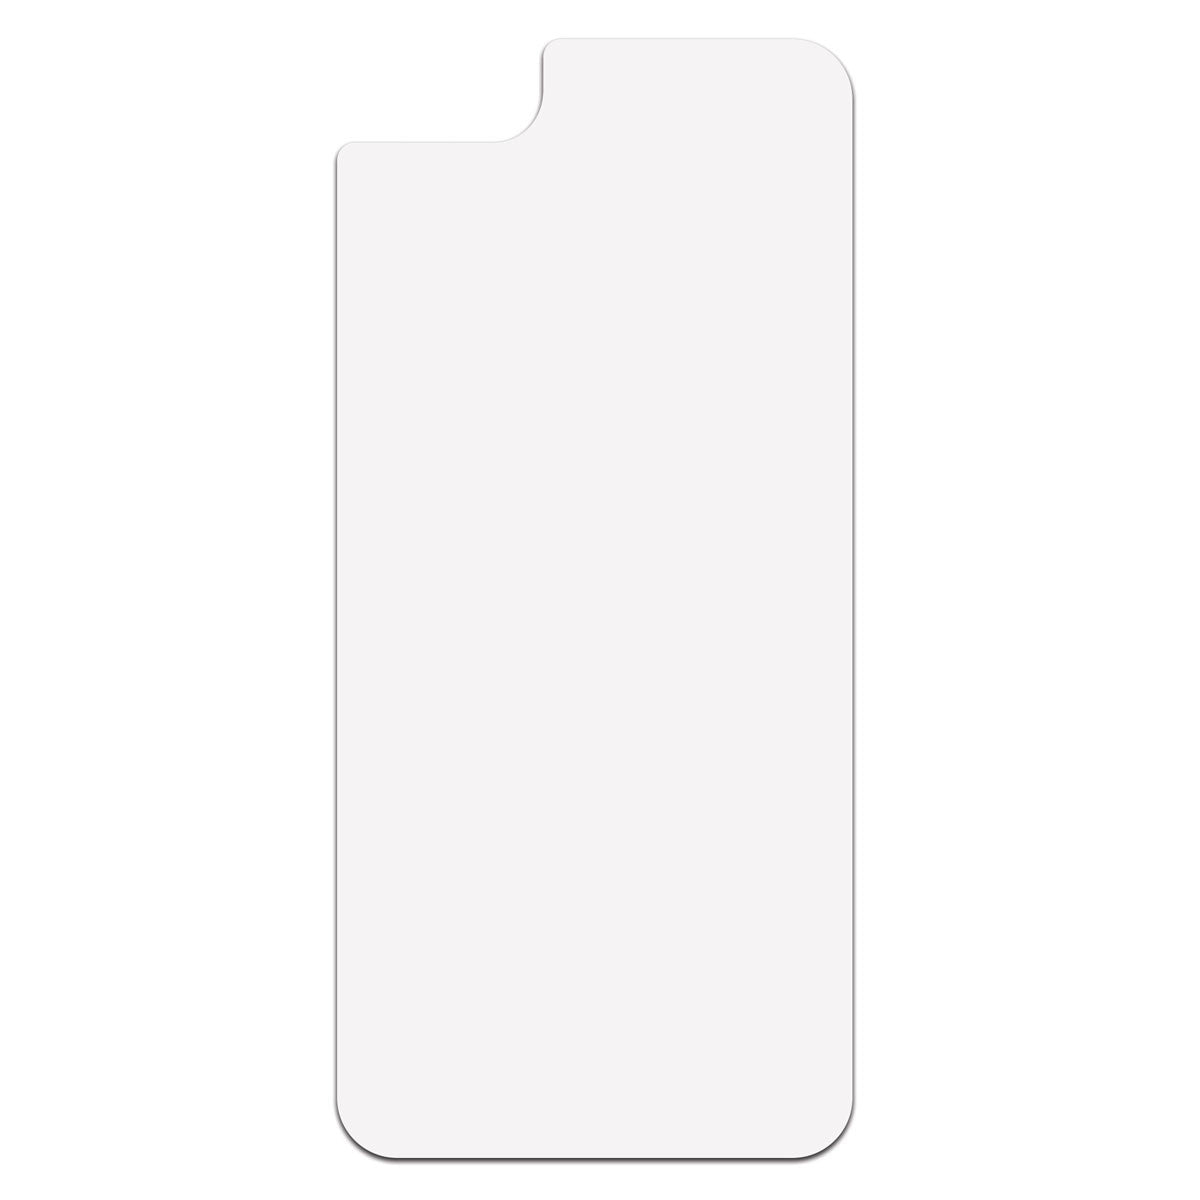 Replacement Adhesive - iPhone 7